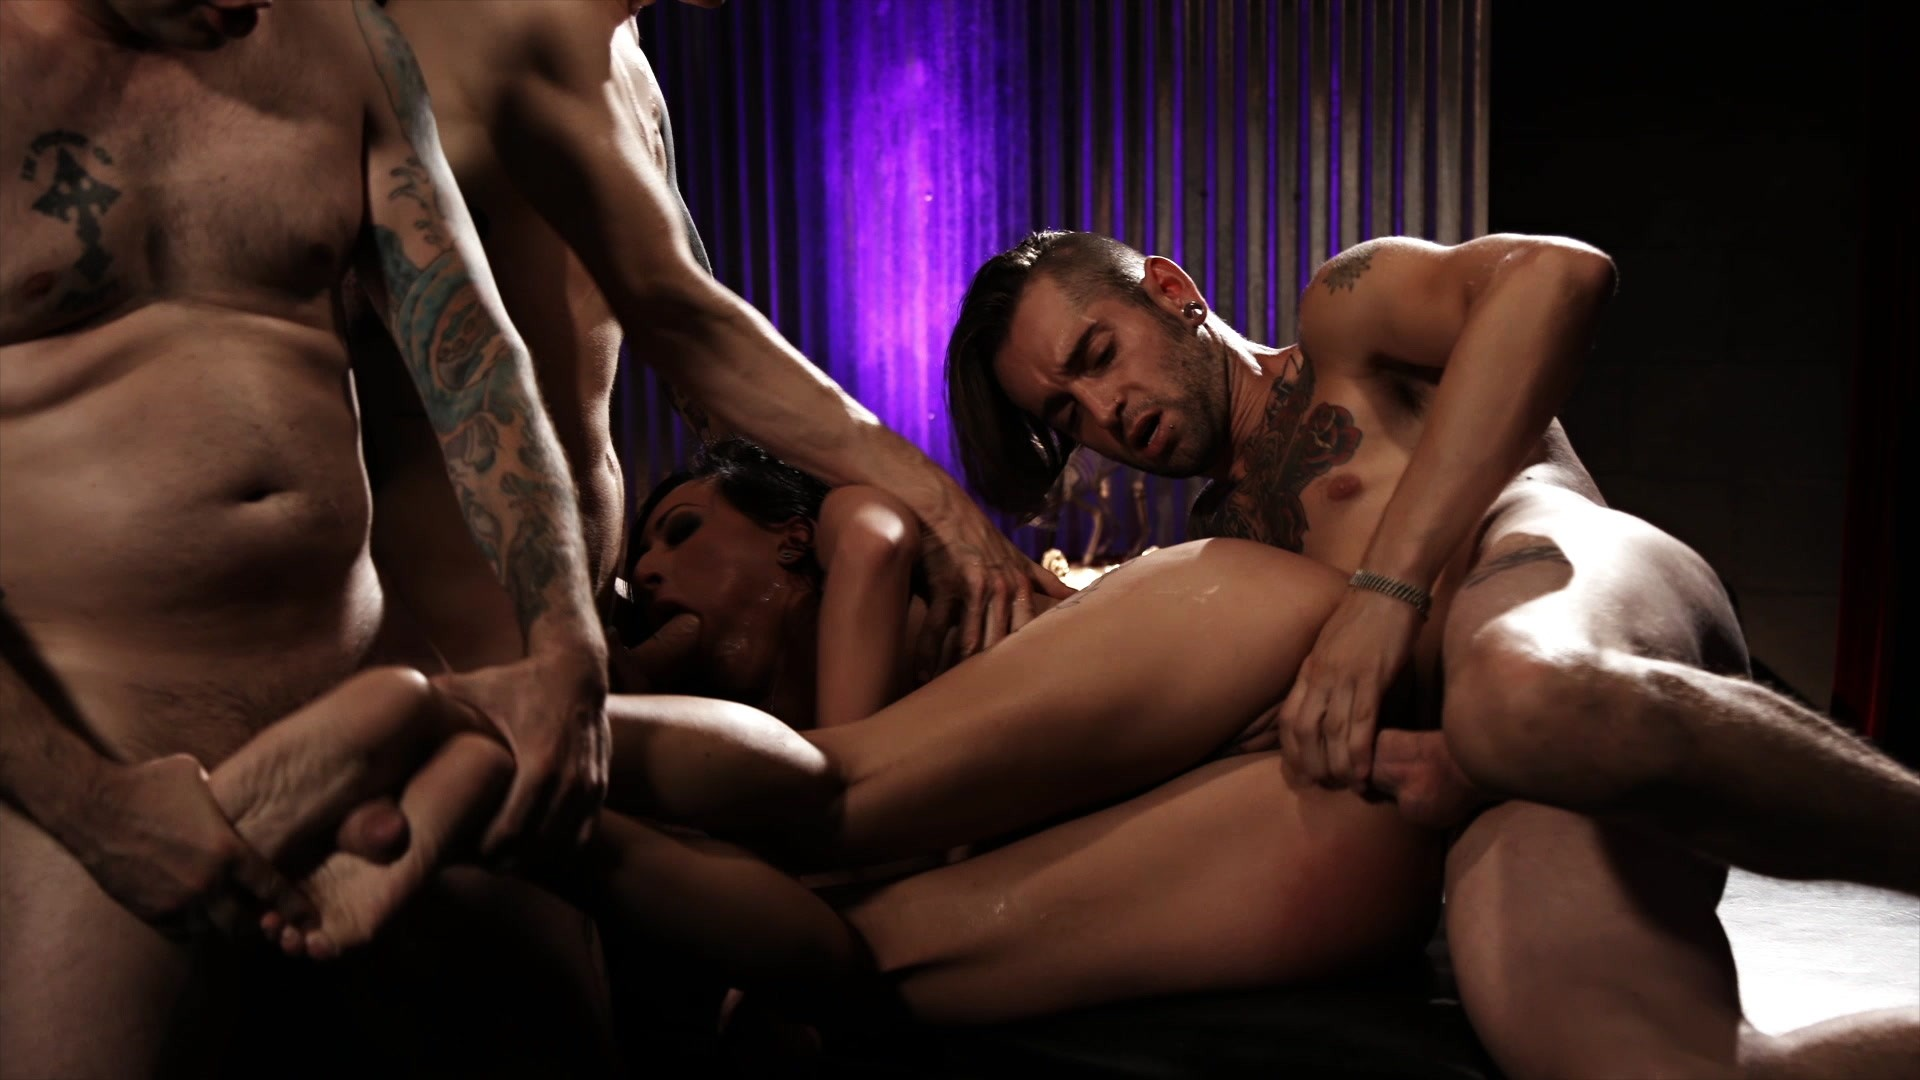 Scene with Tommy Pistol, Lily Lane and Owen Gray - image 12 out of 20